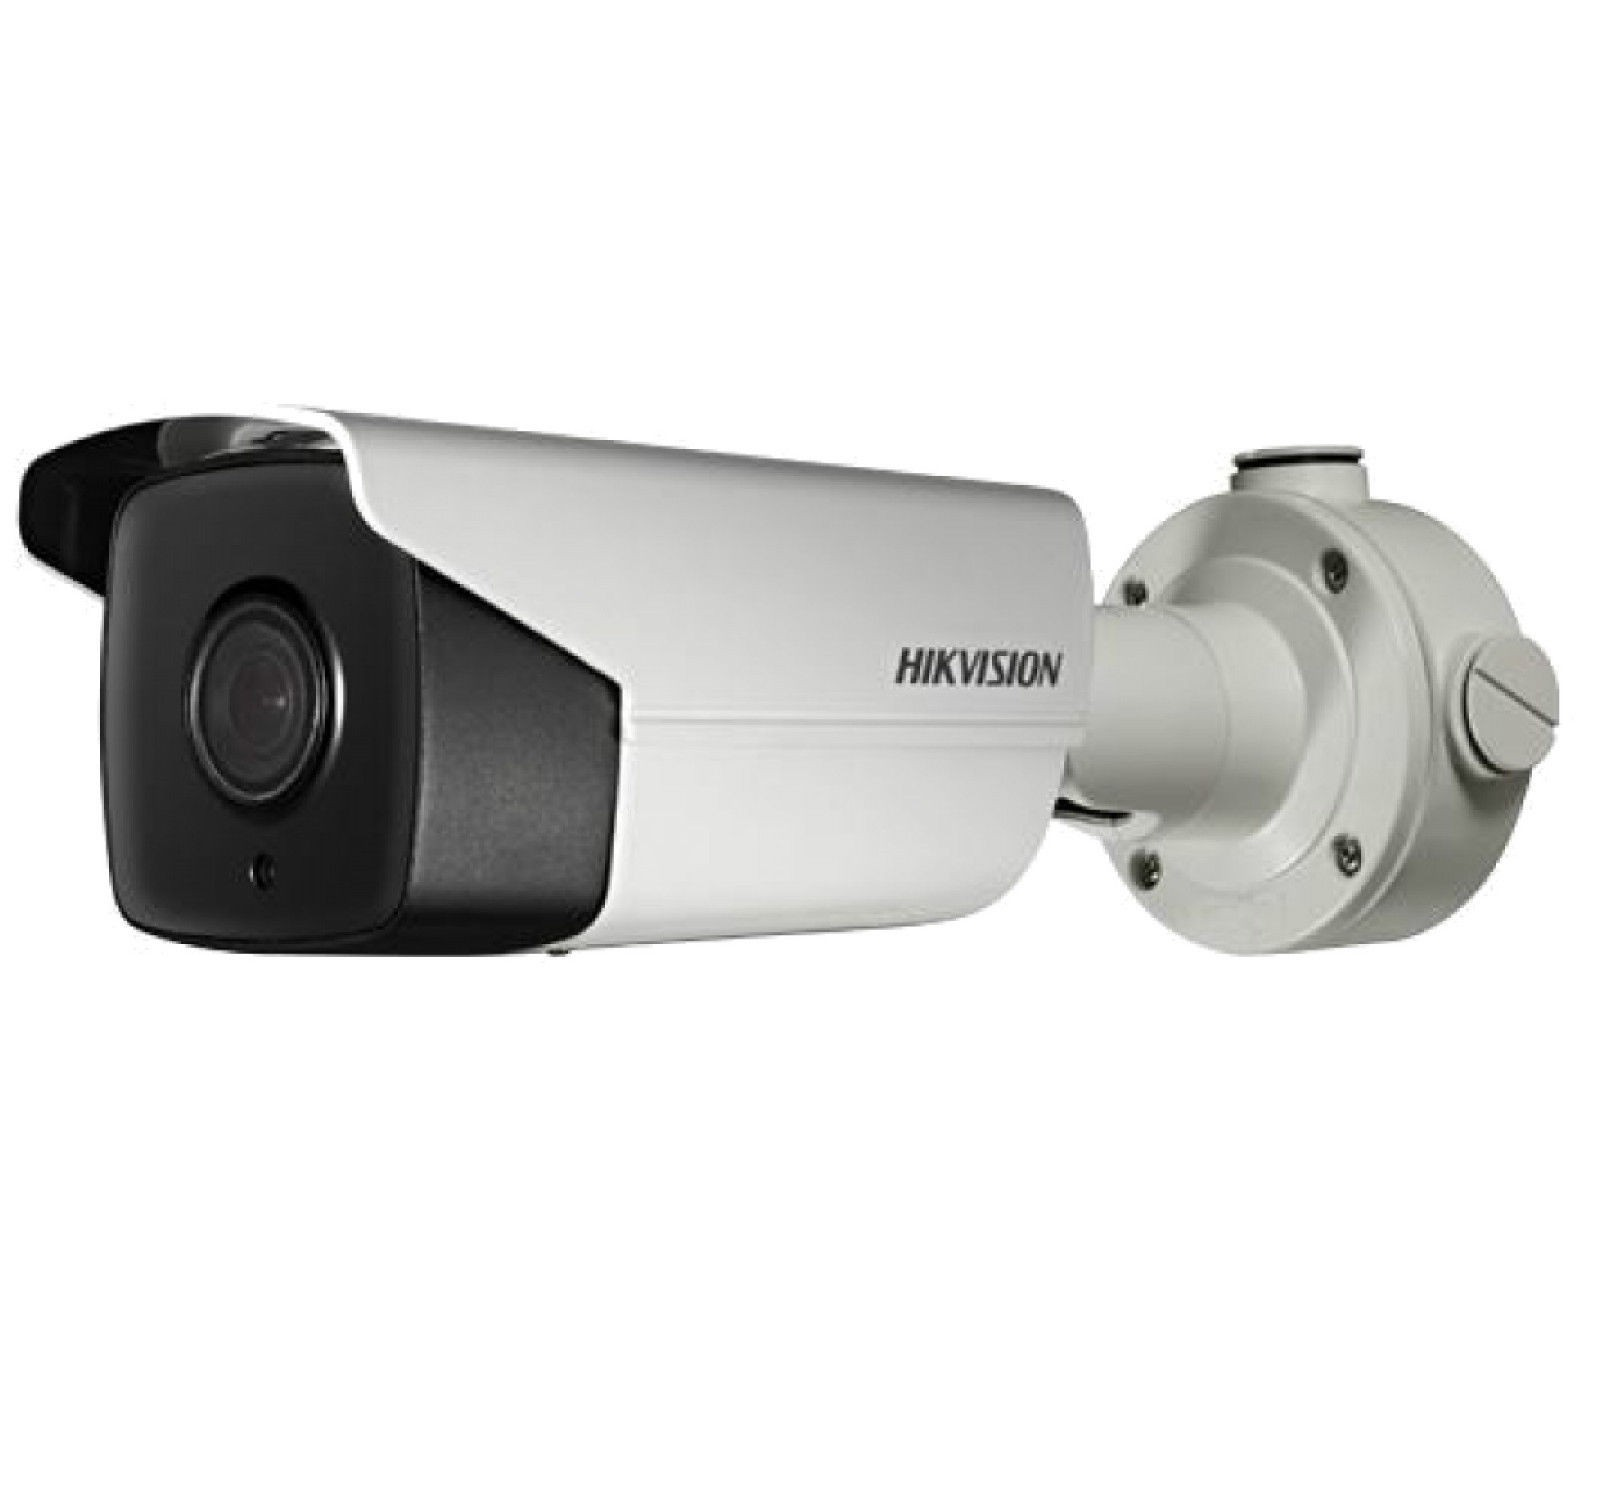 Hikvision DS-2CD4A26FWD-IZS/P ANPR LPR 2MP Ultra Low Light Smart Network IP Camera 8-32mm 60/FPS POE Motorised Lens IP67